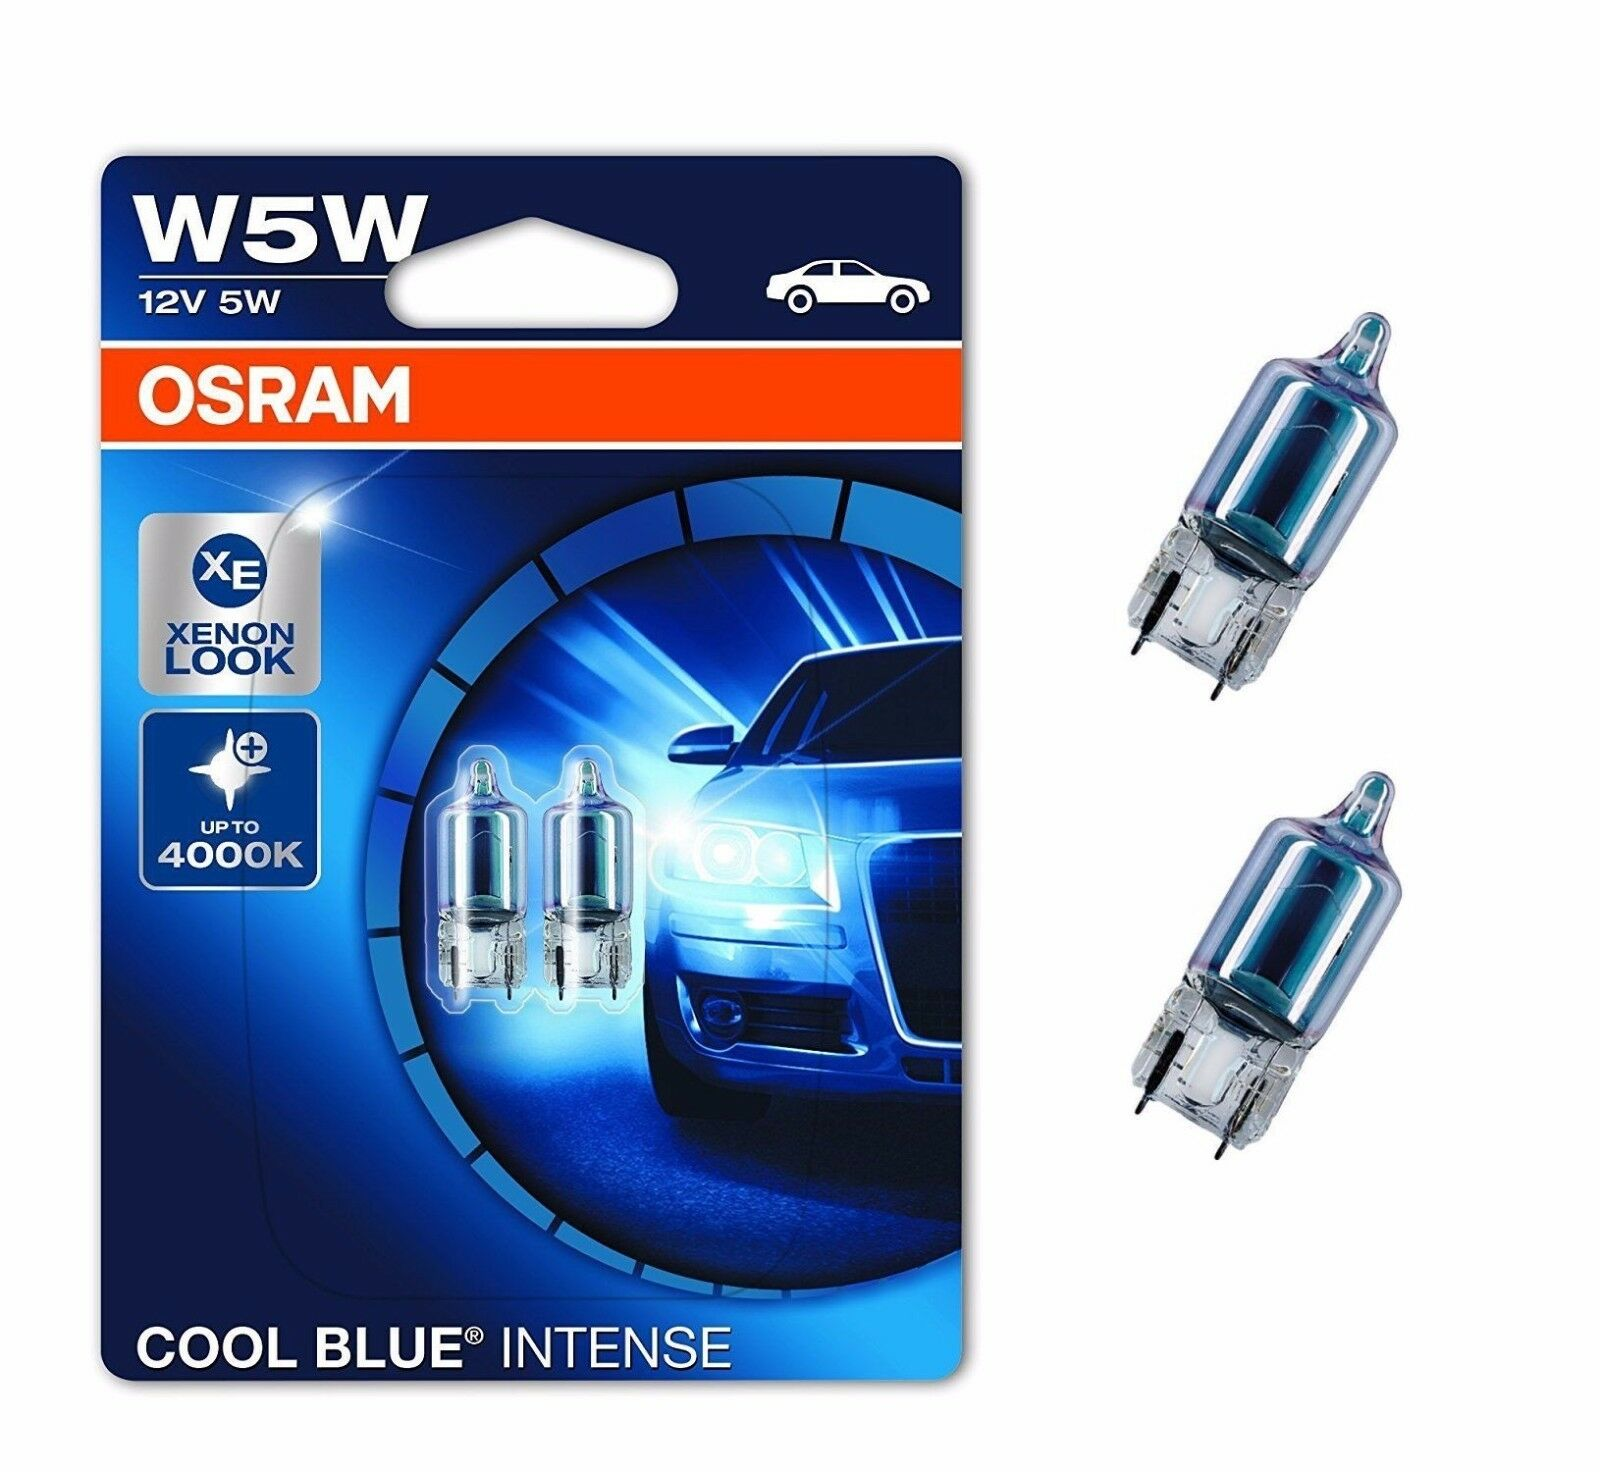 osram w5w cool blue standlicht oder kennzeichenbeleuchtung. Black Bedroom Furniture Sets. Home Design Ideas